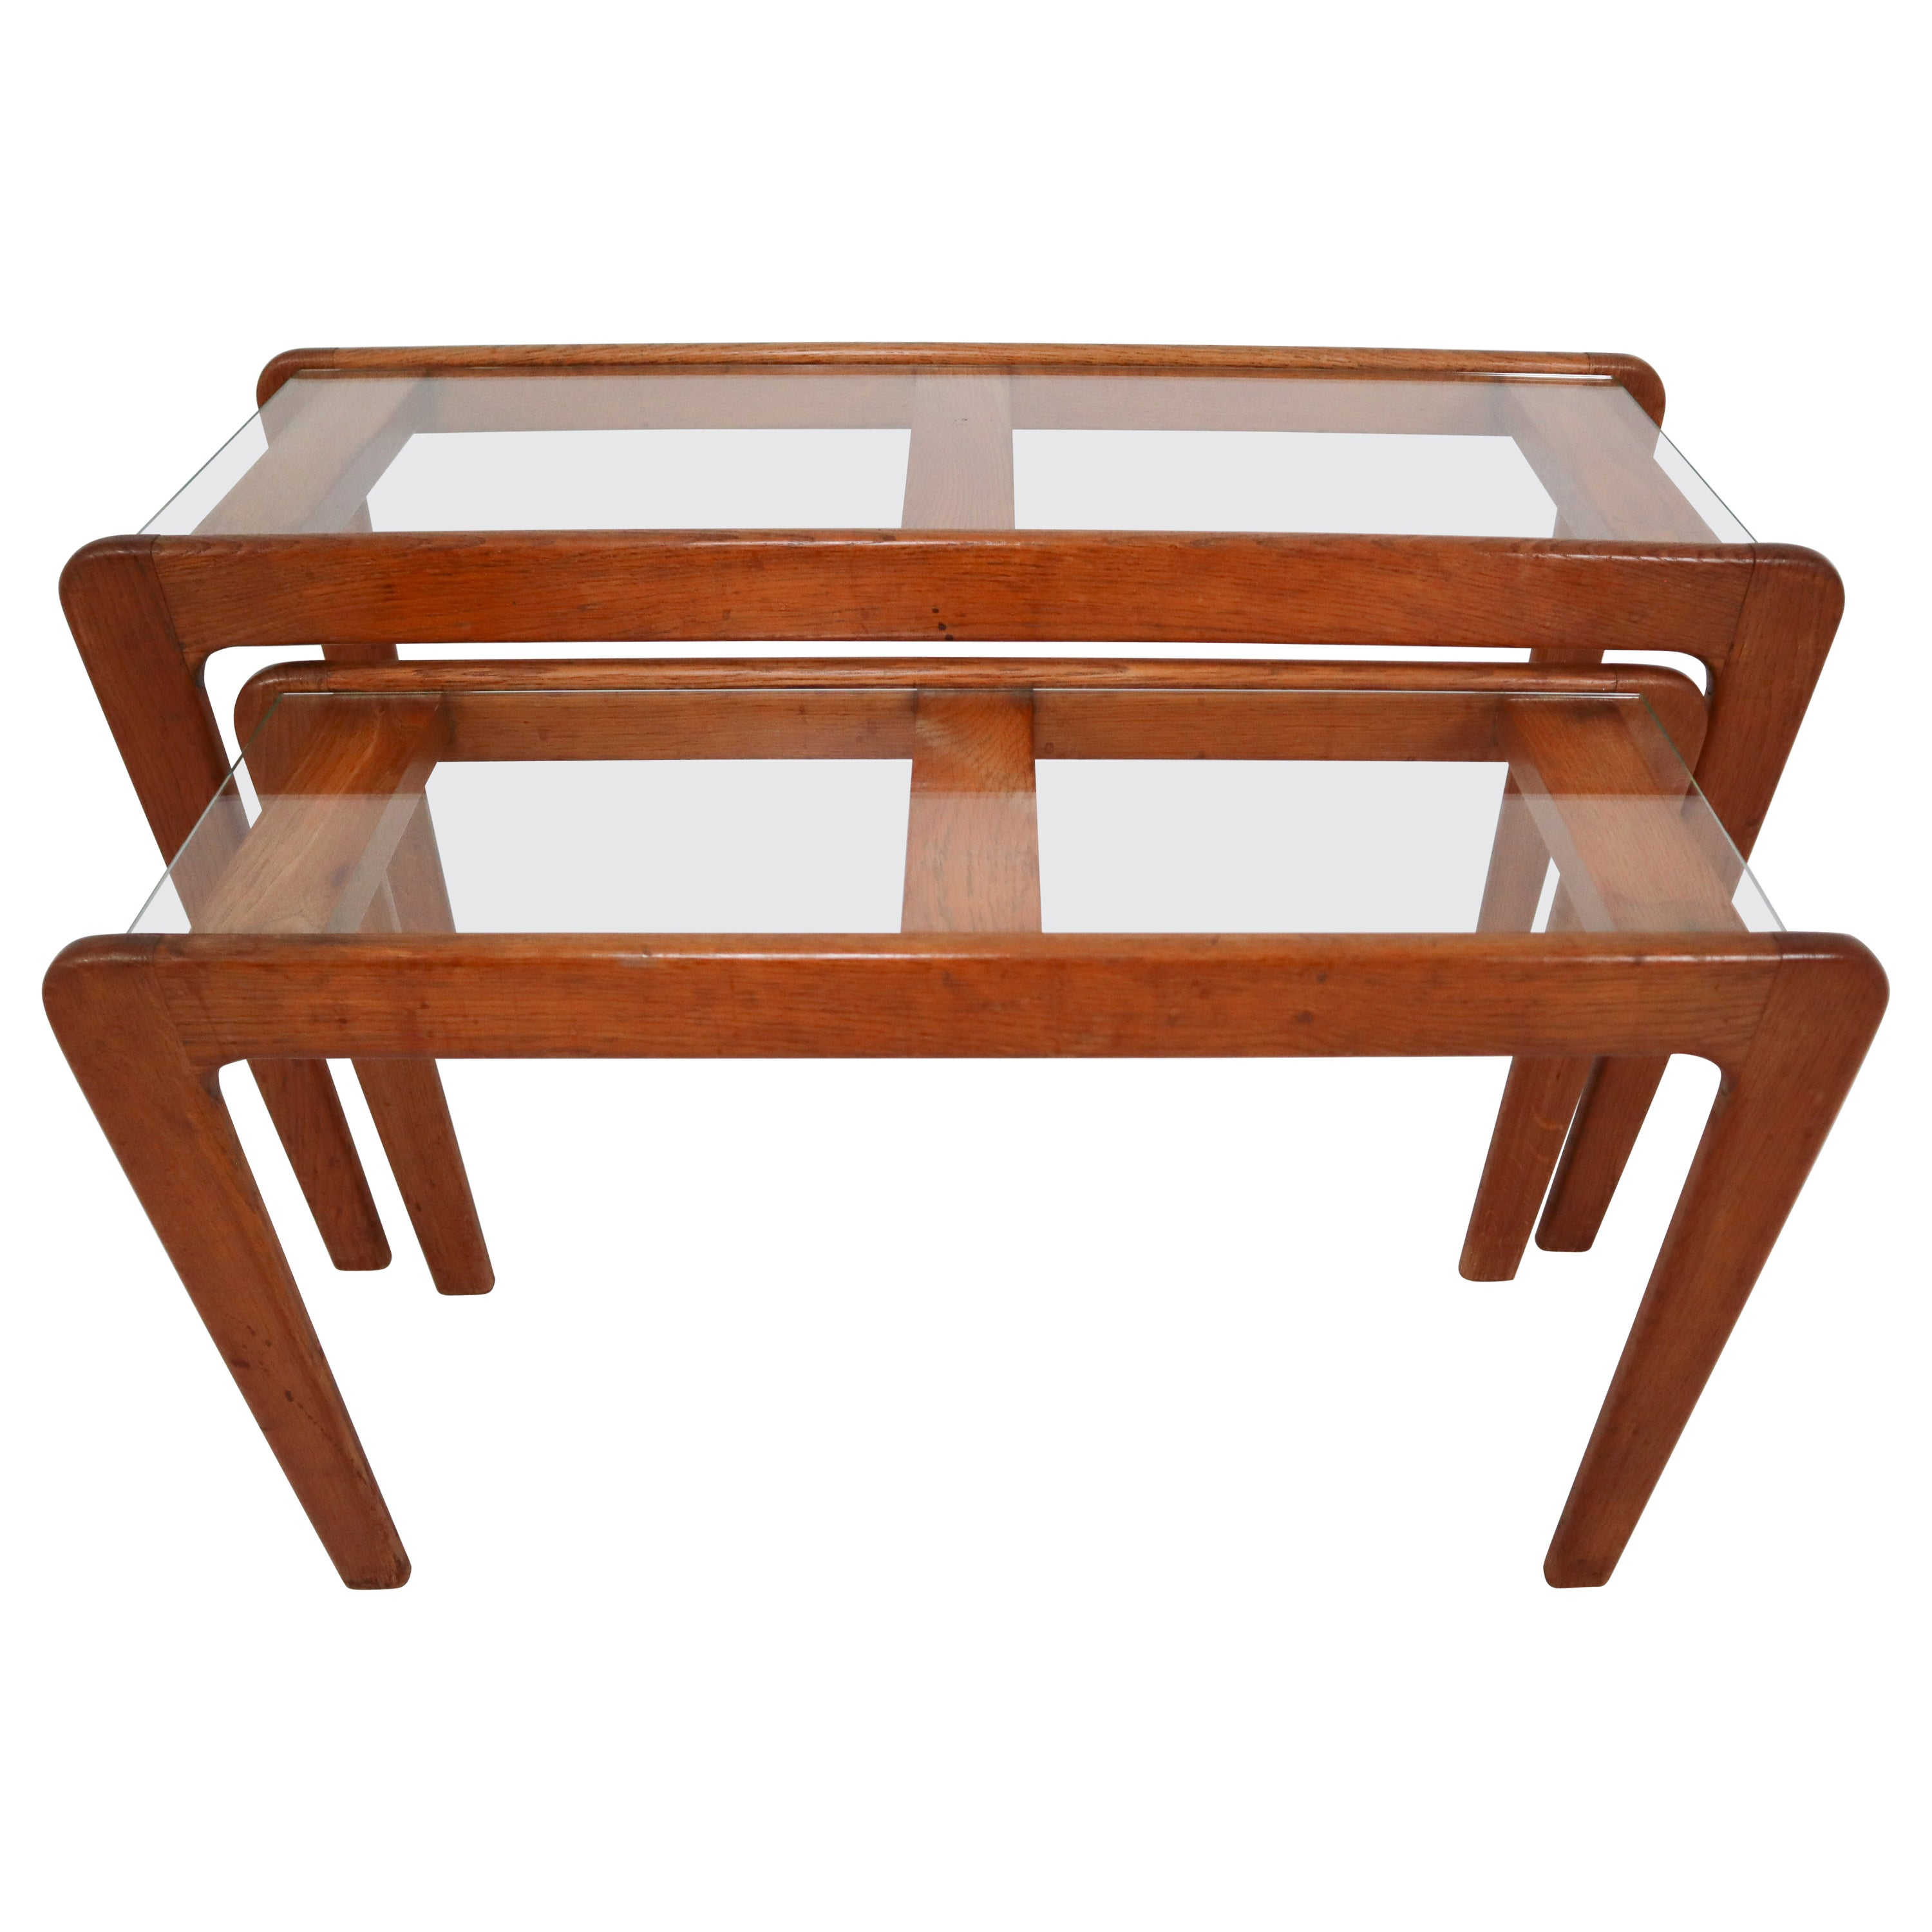 Gigogne Coffee Table Designed by Gustave Gautier